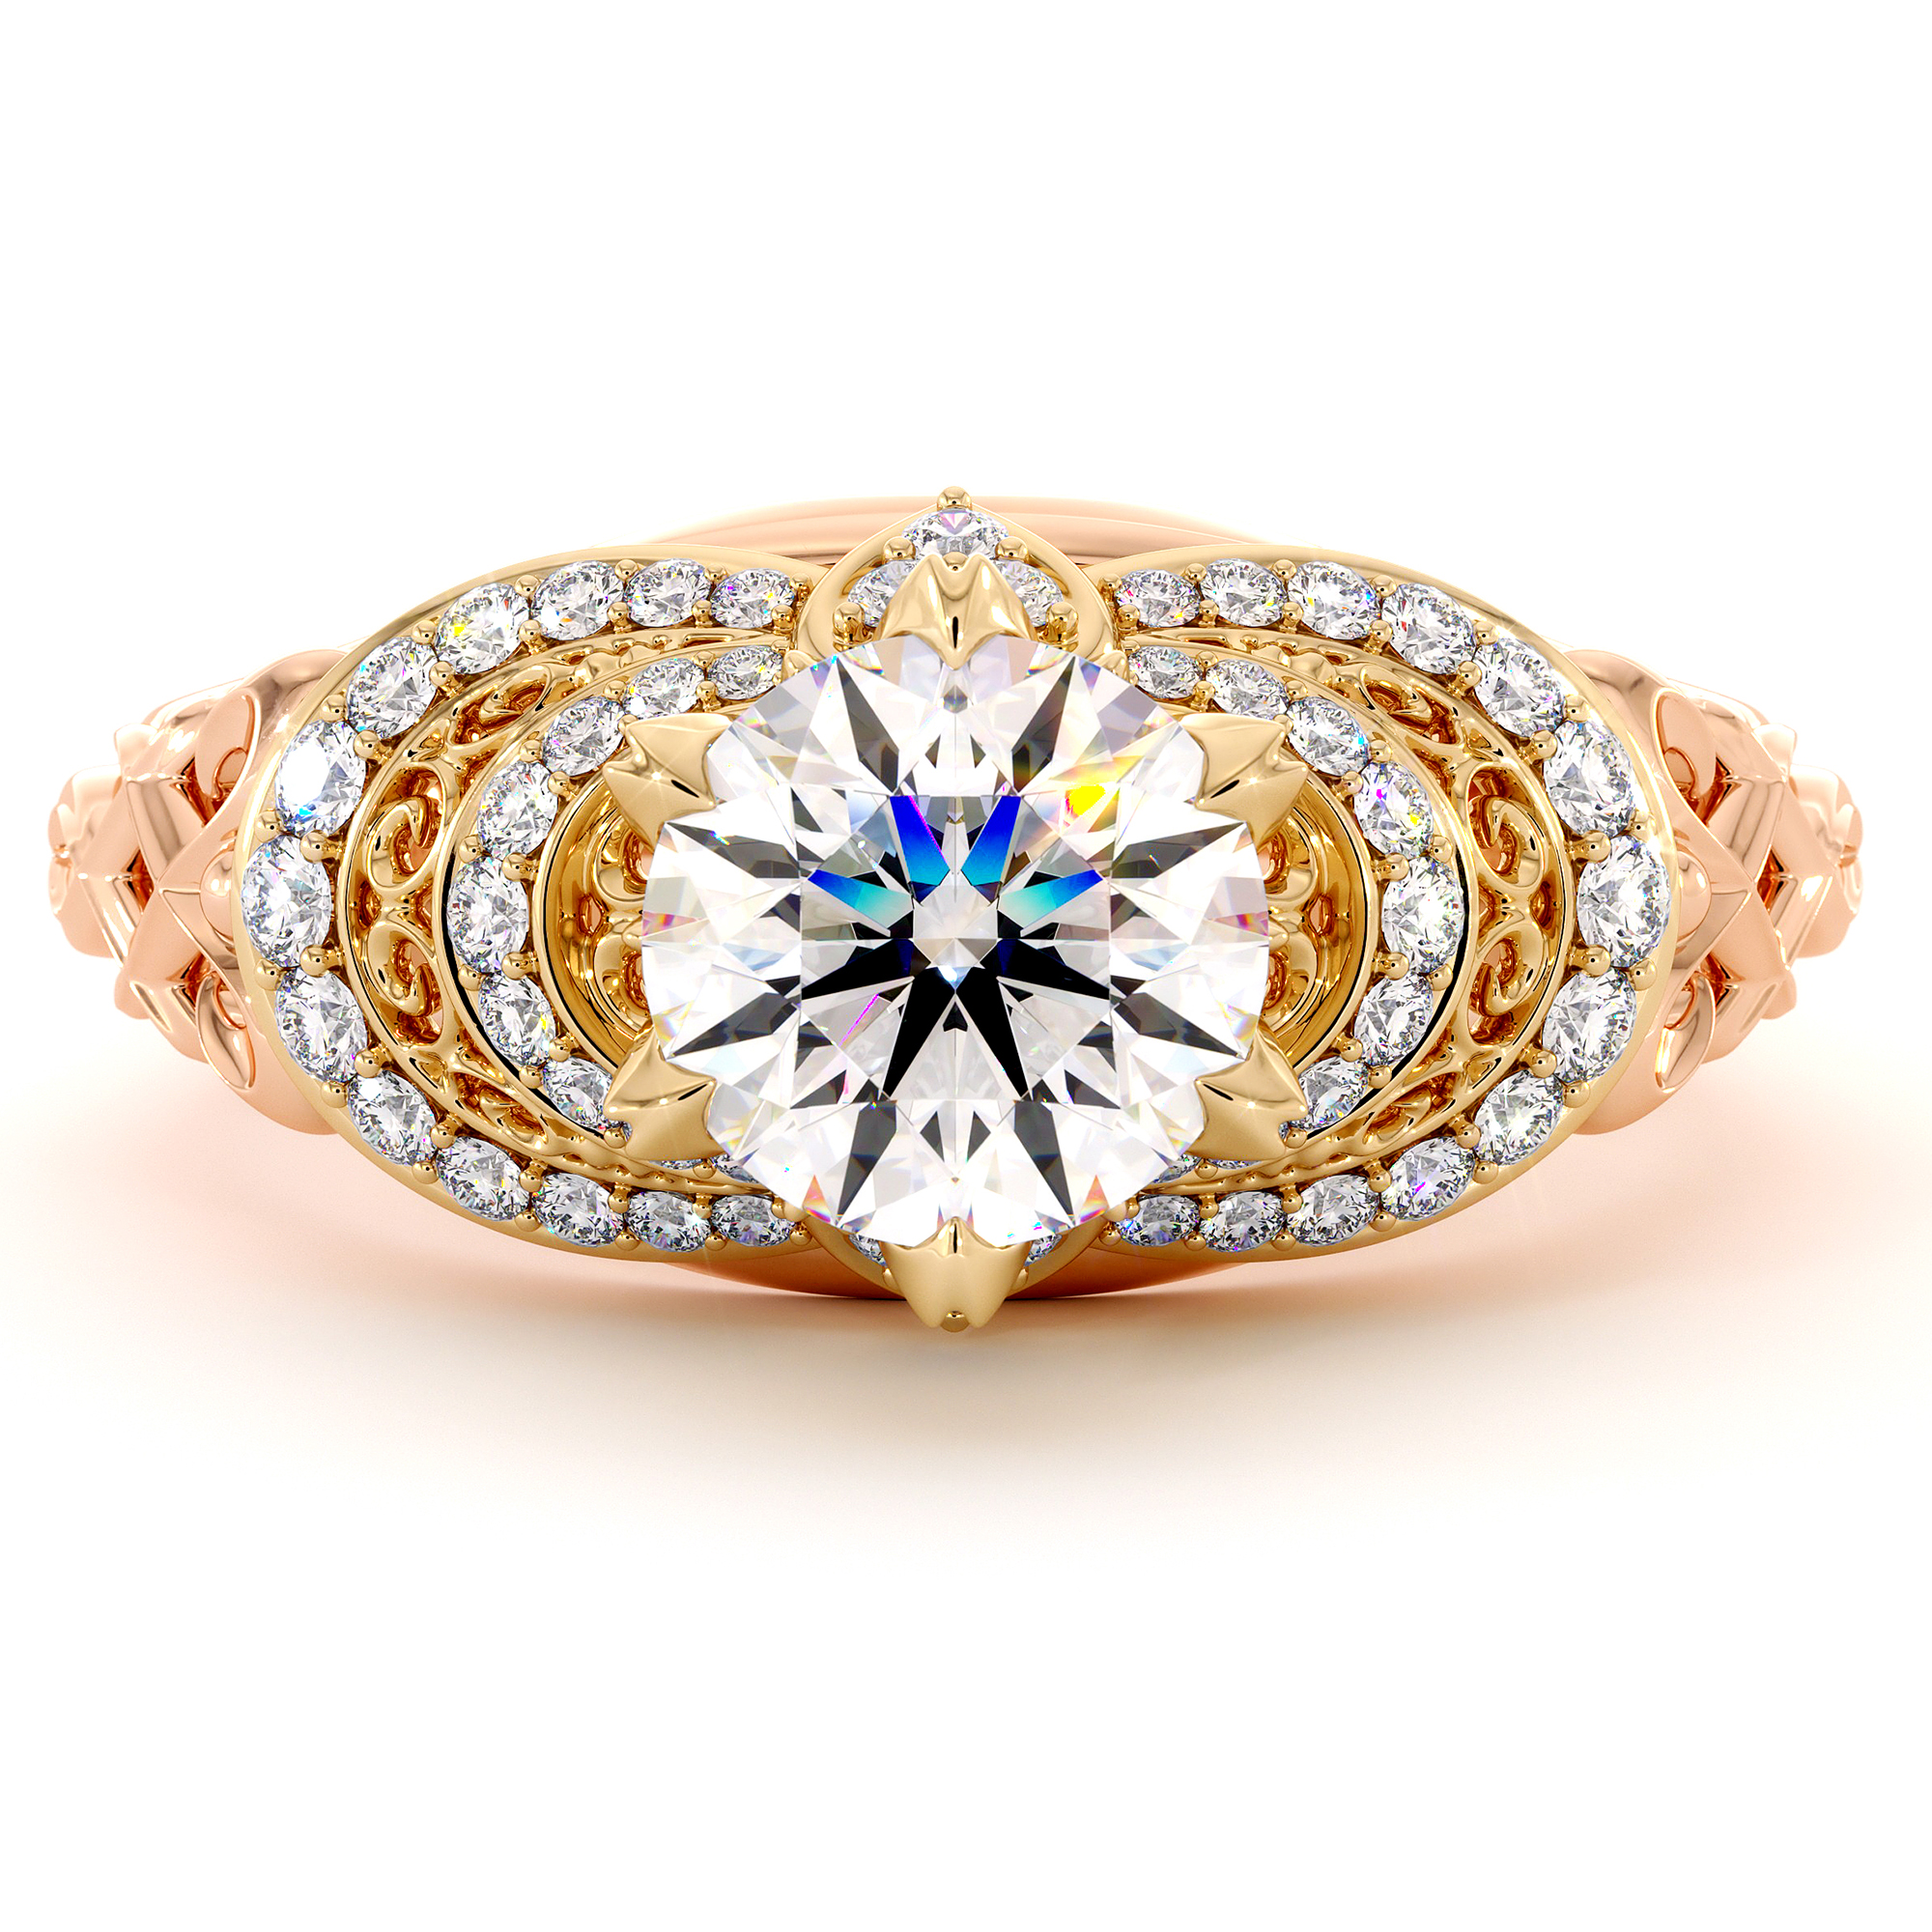 Two Tone Gold Heart Ring 1.55 Ct. Round Moissanite Ring Regal Diamonds Engagement Ring